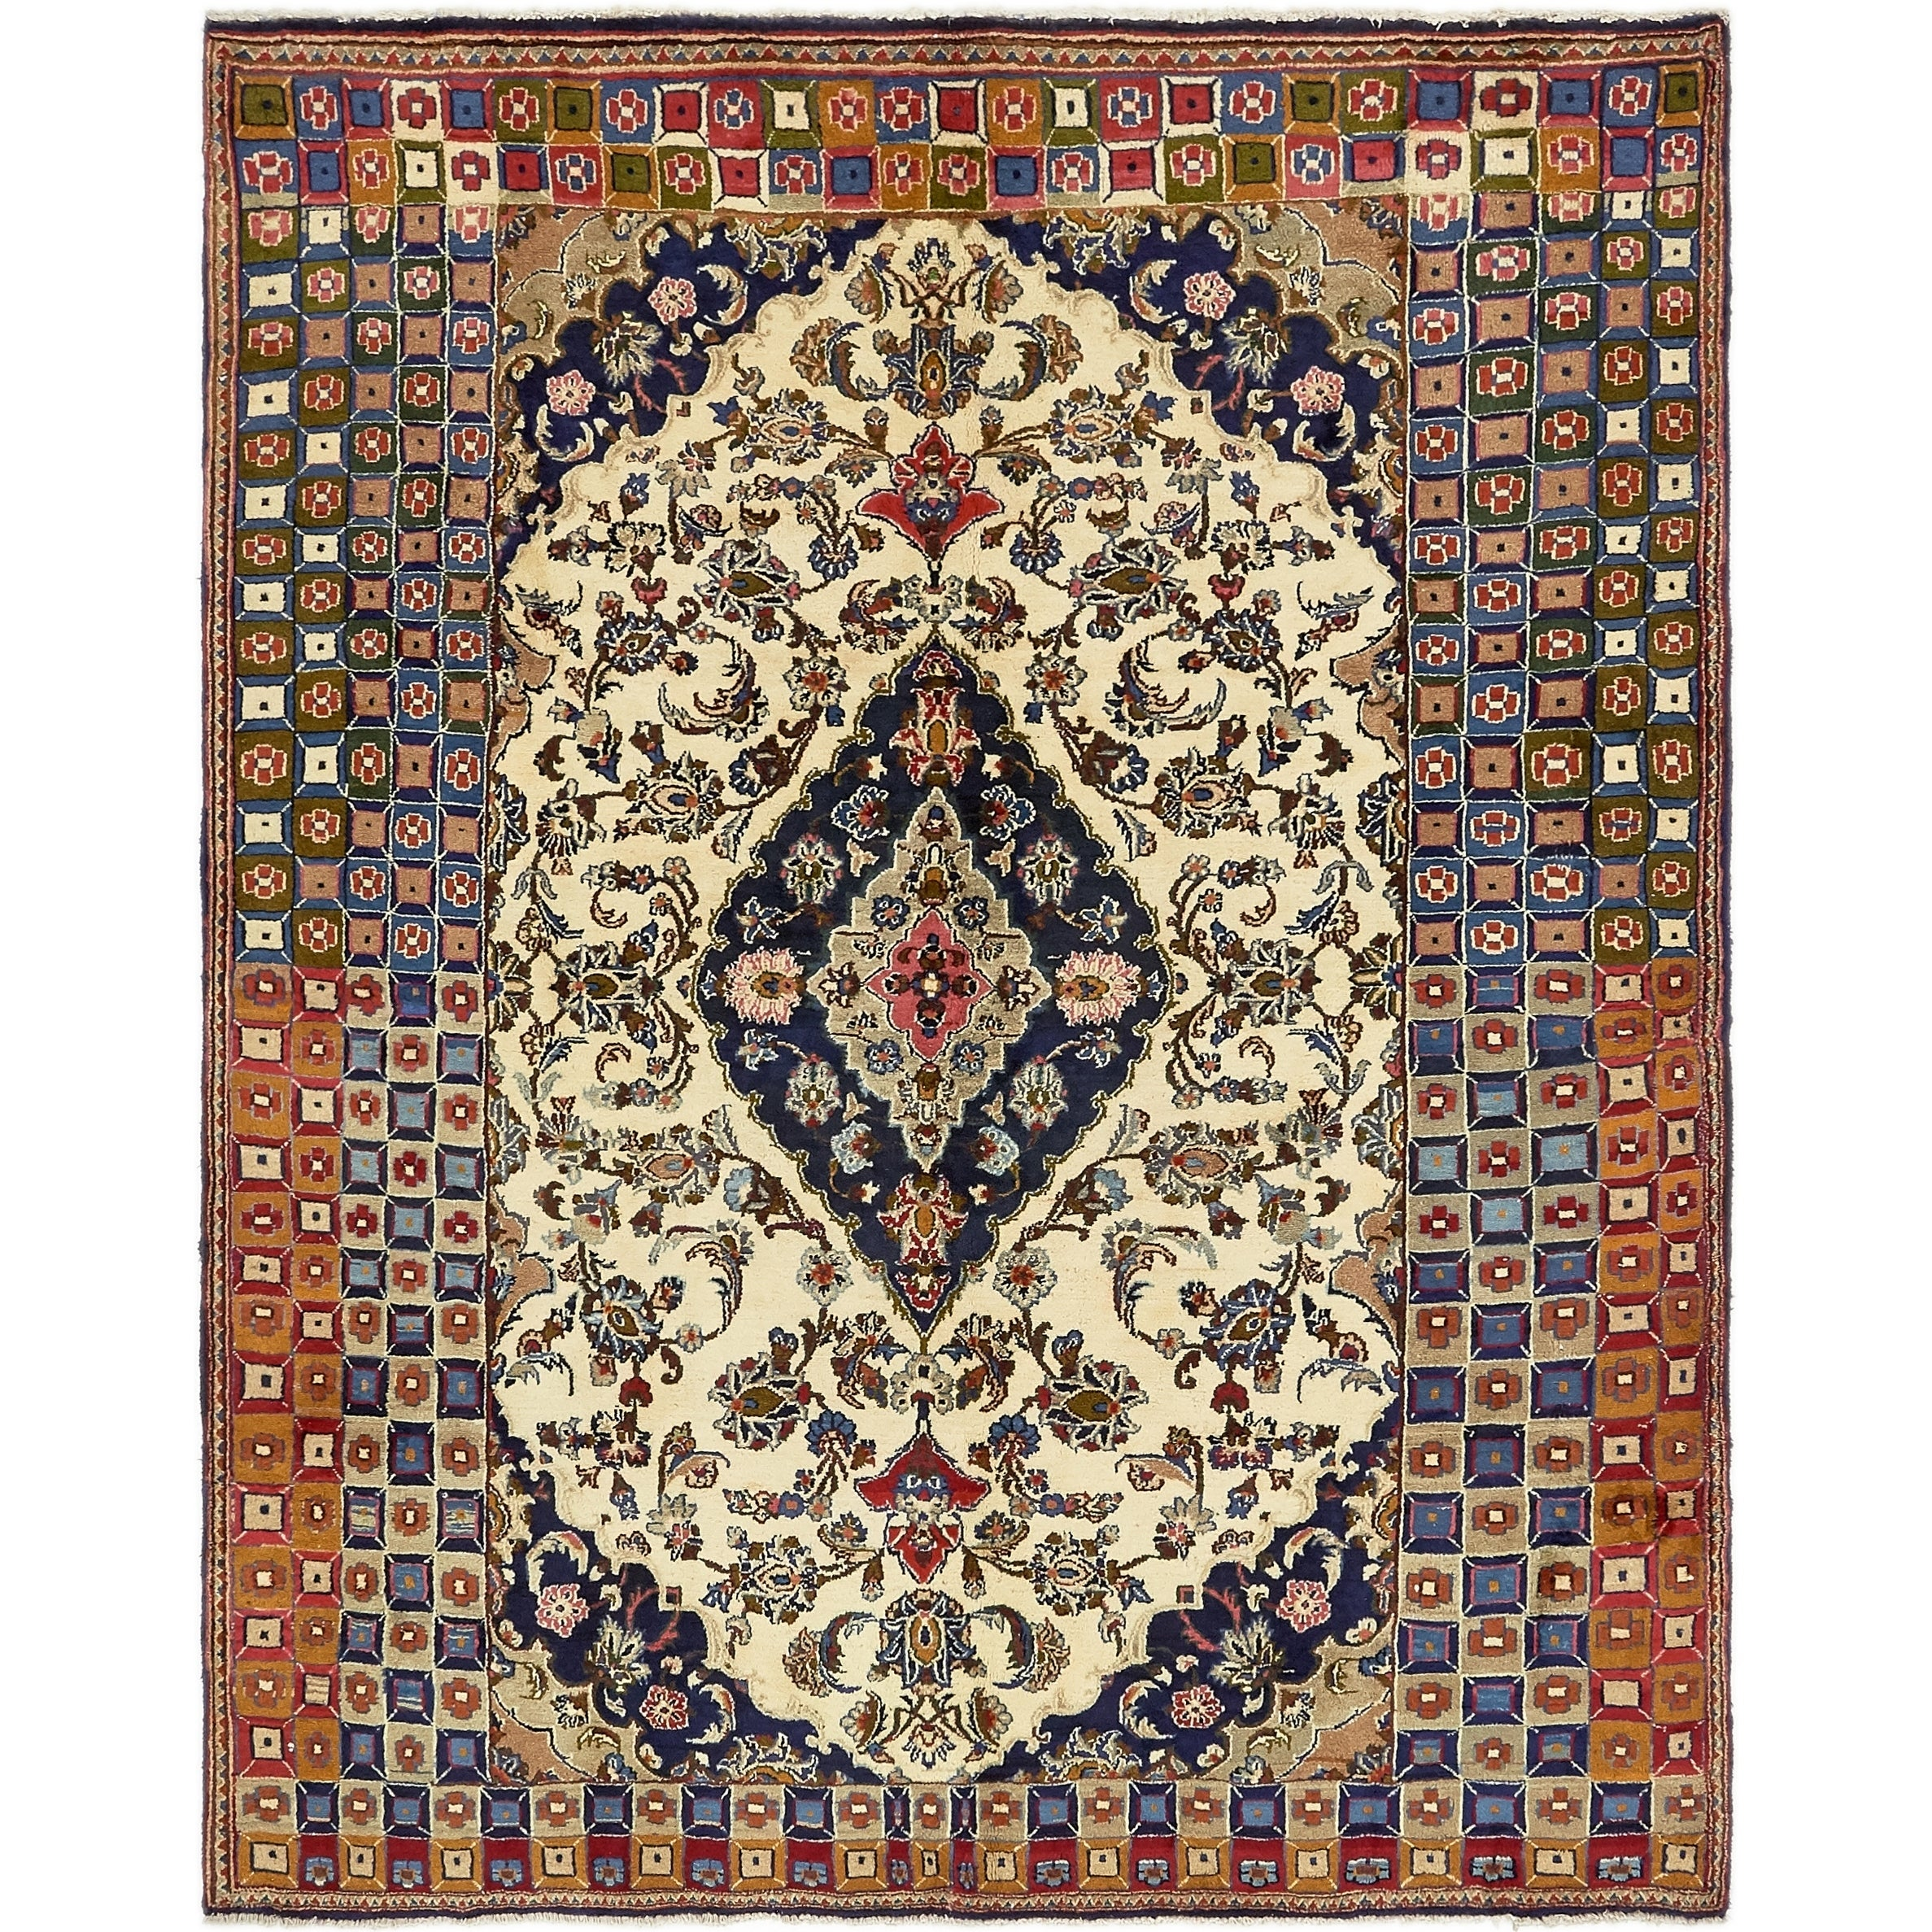 Hand Knotted Kashan Semi Antique Wool Area Rug - 6 5 x 8 (Ivory - 6 5 x 8)